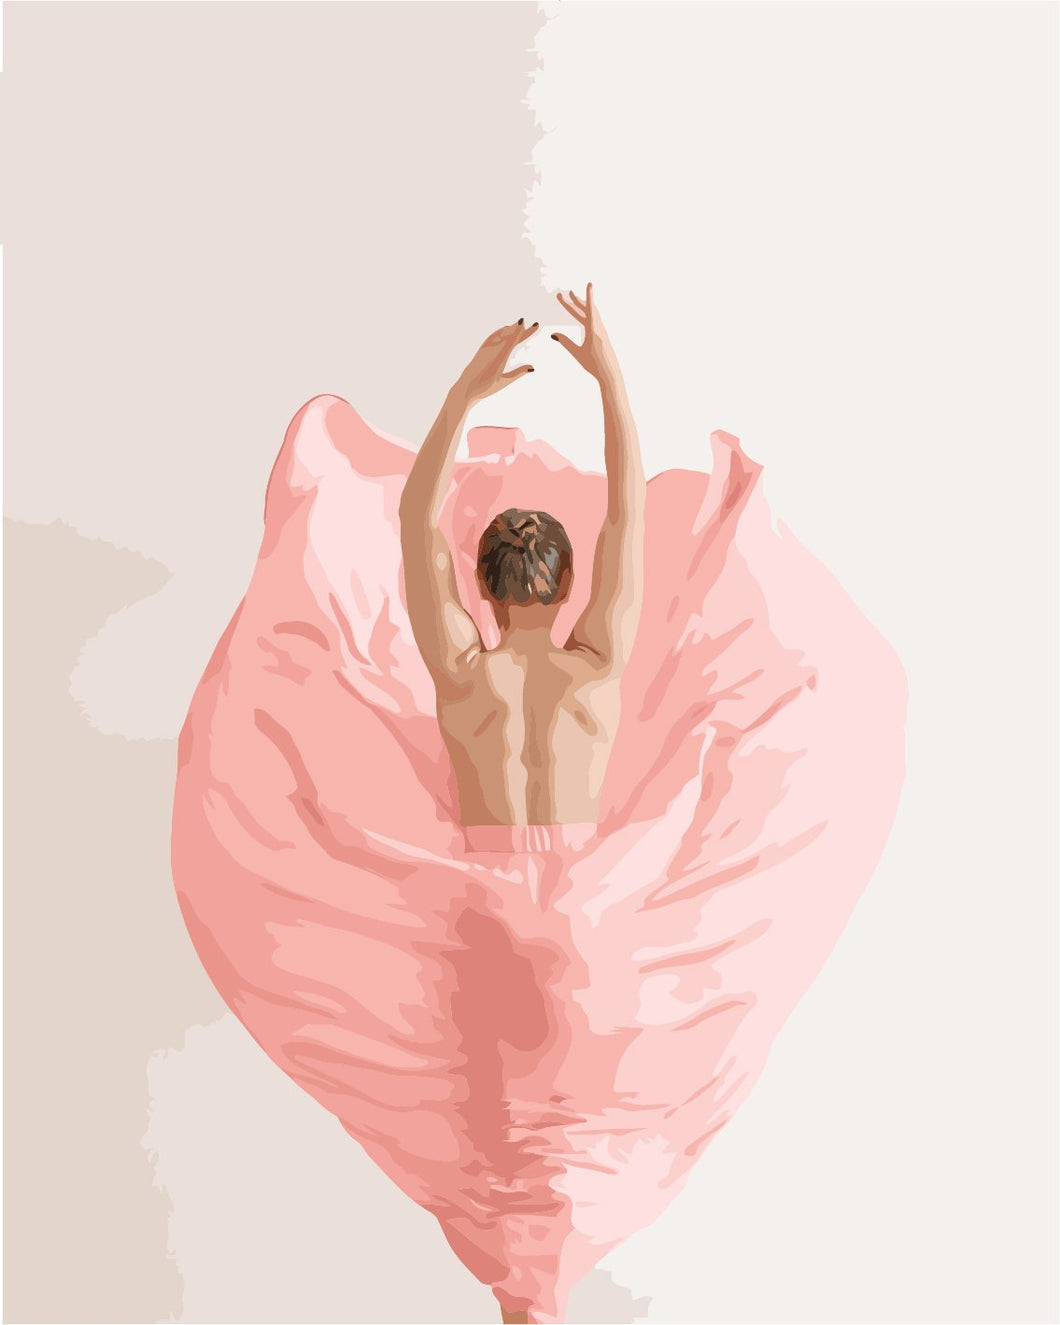 DIY Painting By Numbers - Pink Ballet Girl